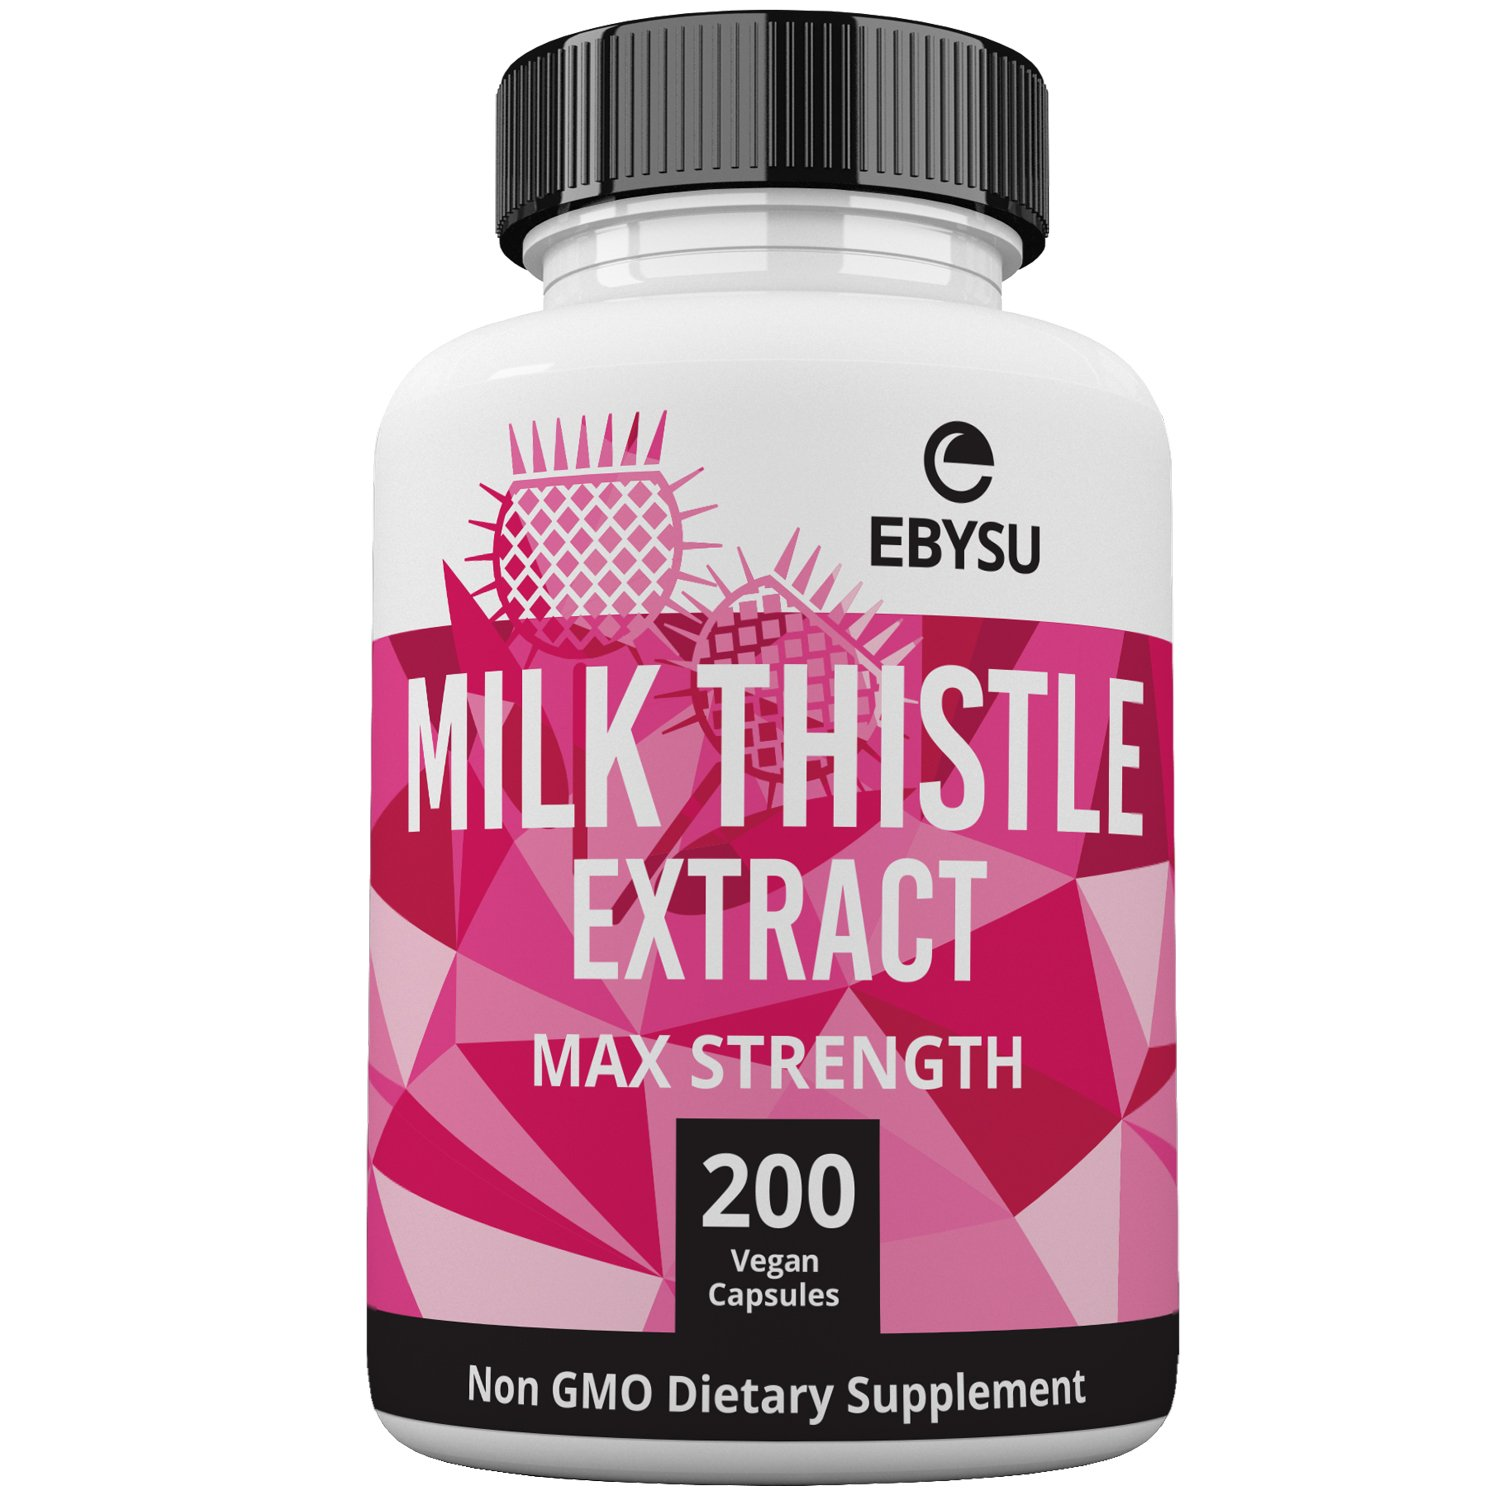 EBYSU Milk Thistle - 200 Day Supply - 1000mg Max Strength 4X Concentrated Extract 4:1 - Vegan Capsules